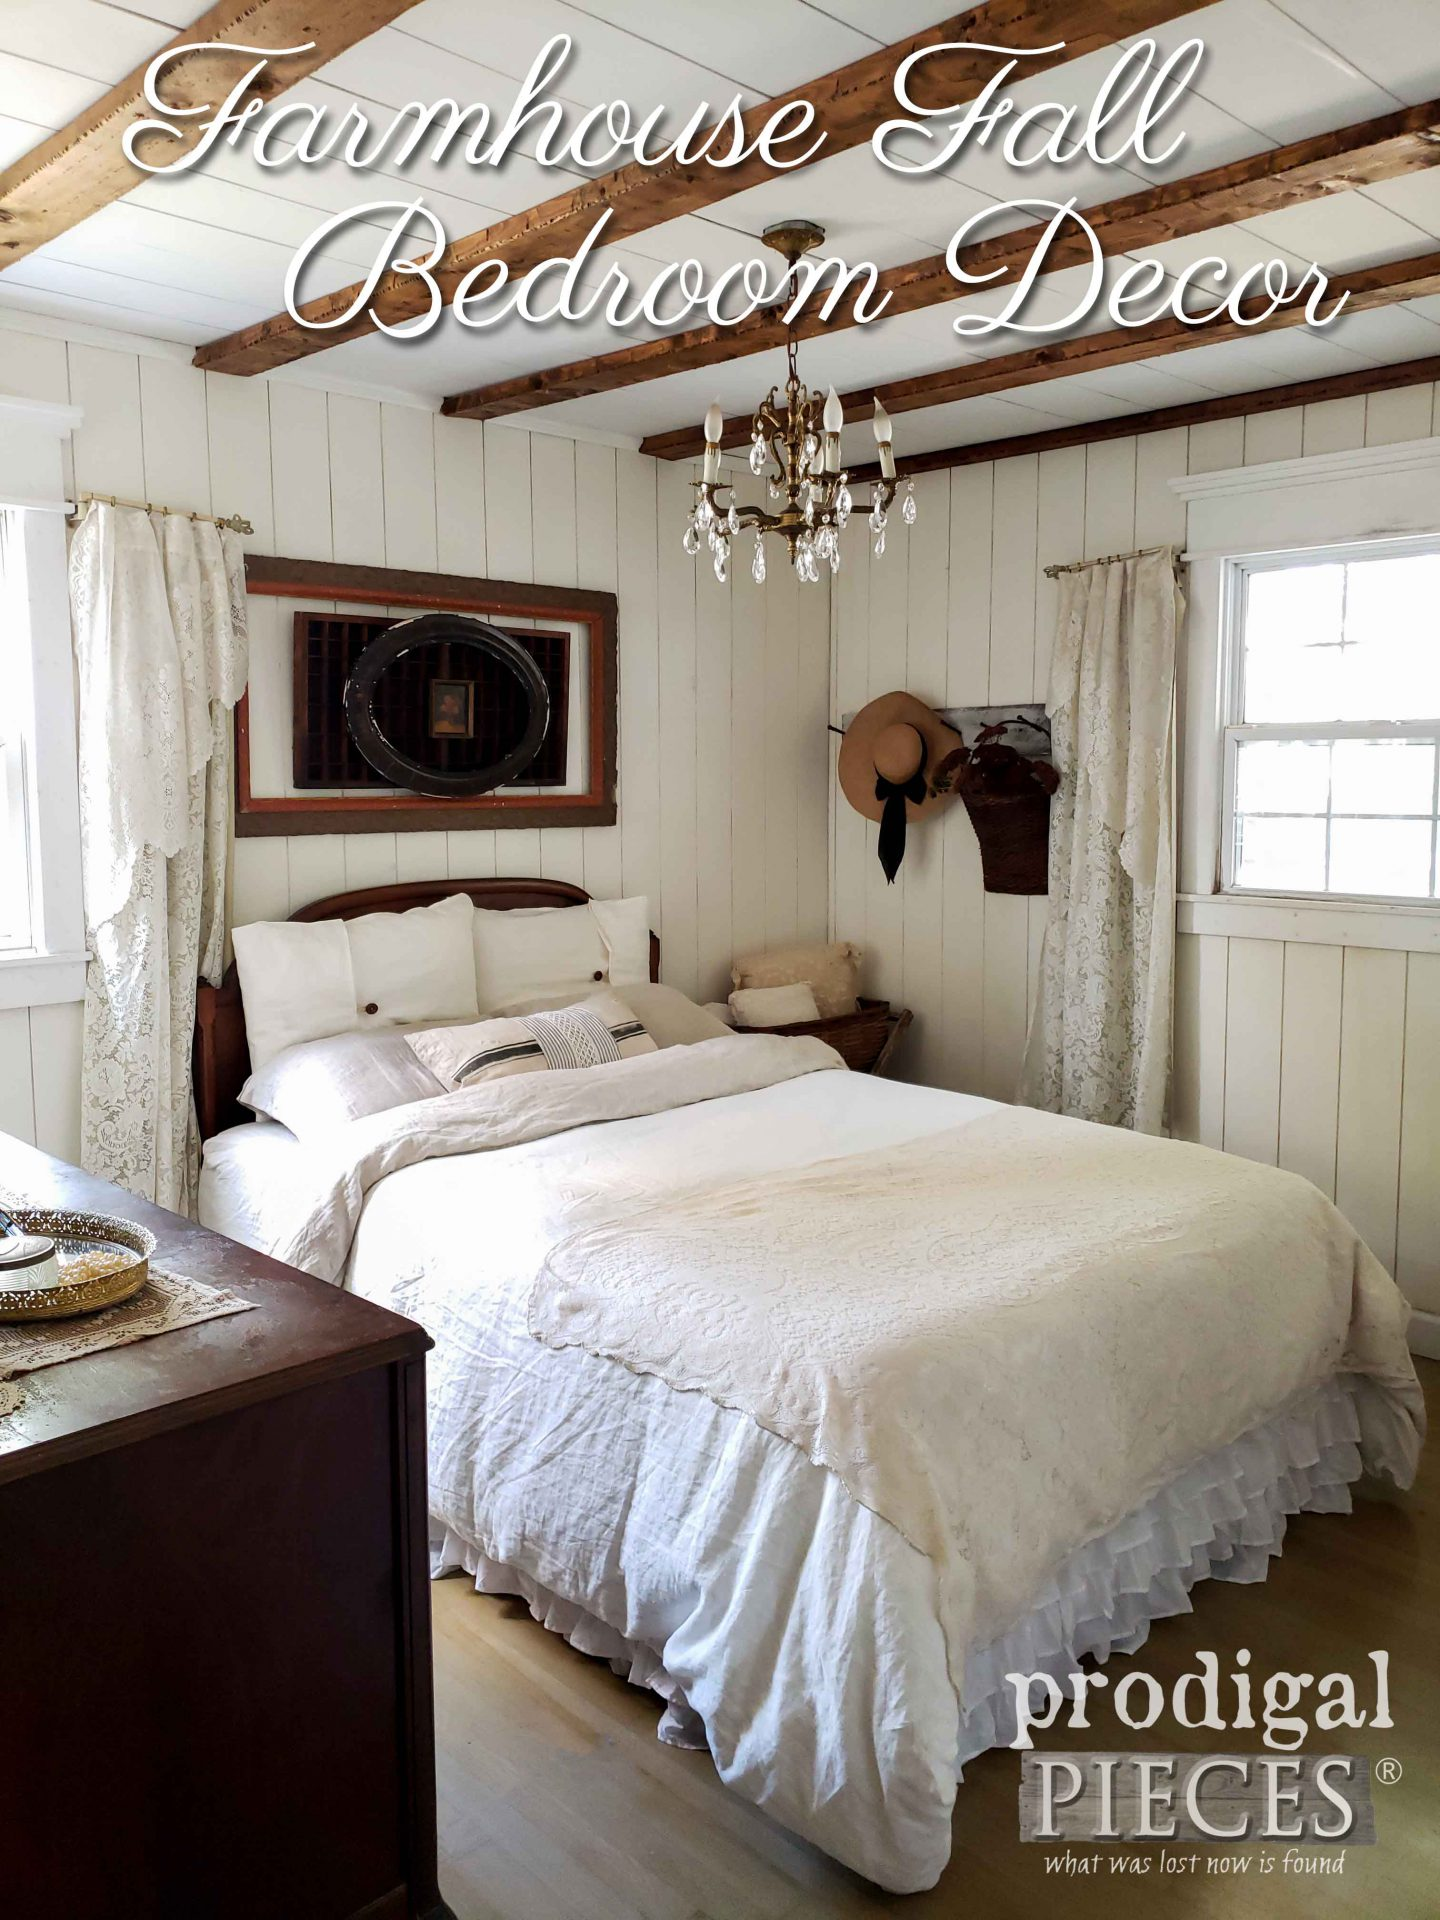 Create your own cozy sanctuary for the autumn season with farmhouse fall bedroom decor | by Prodigal Pieces | prodigalpieces.com #prodigalpieces #diy #farmhouse #bedroom #home #homedecor #fall